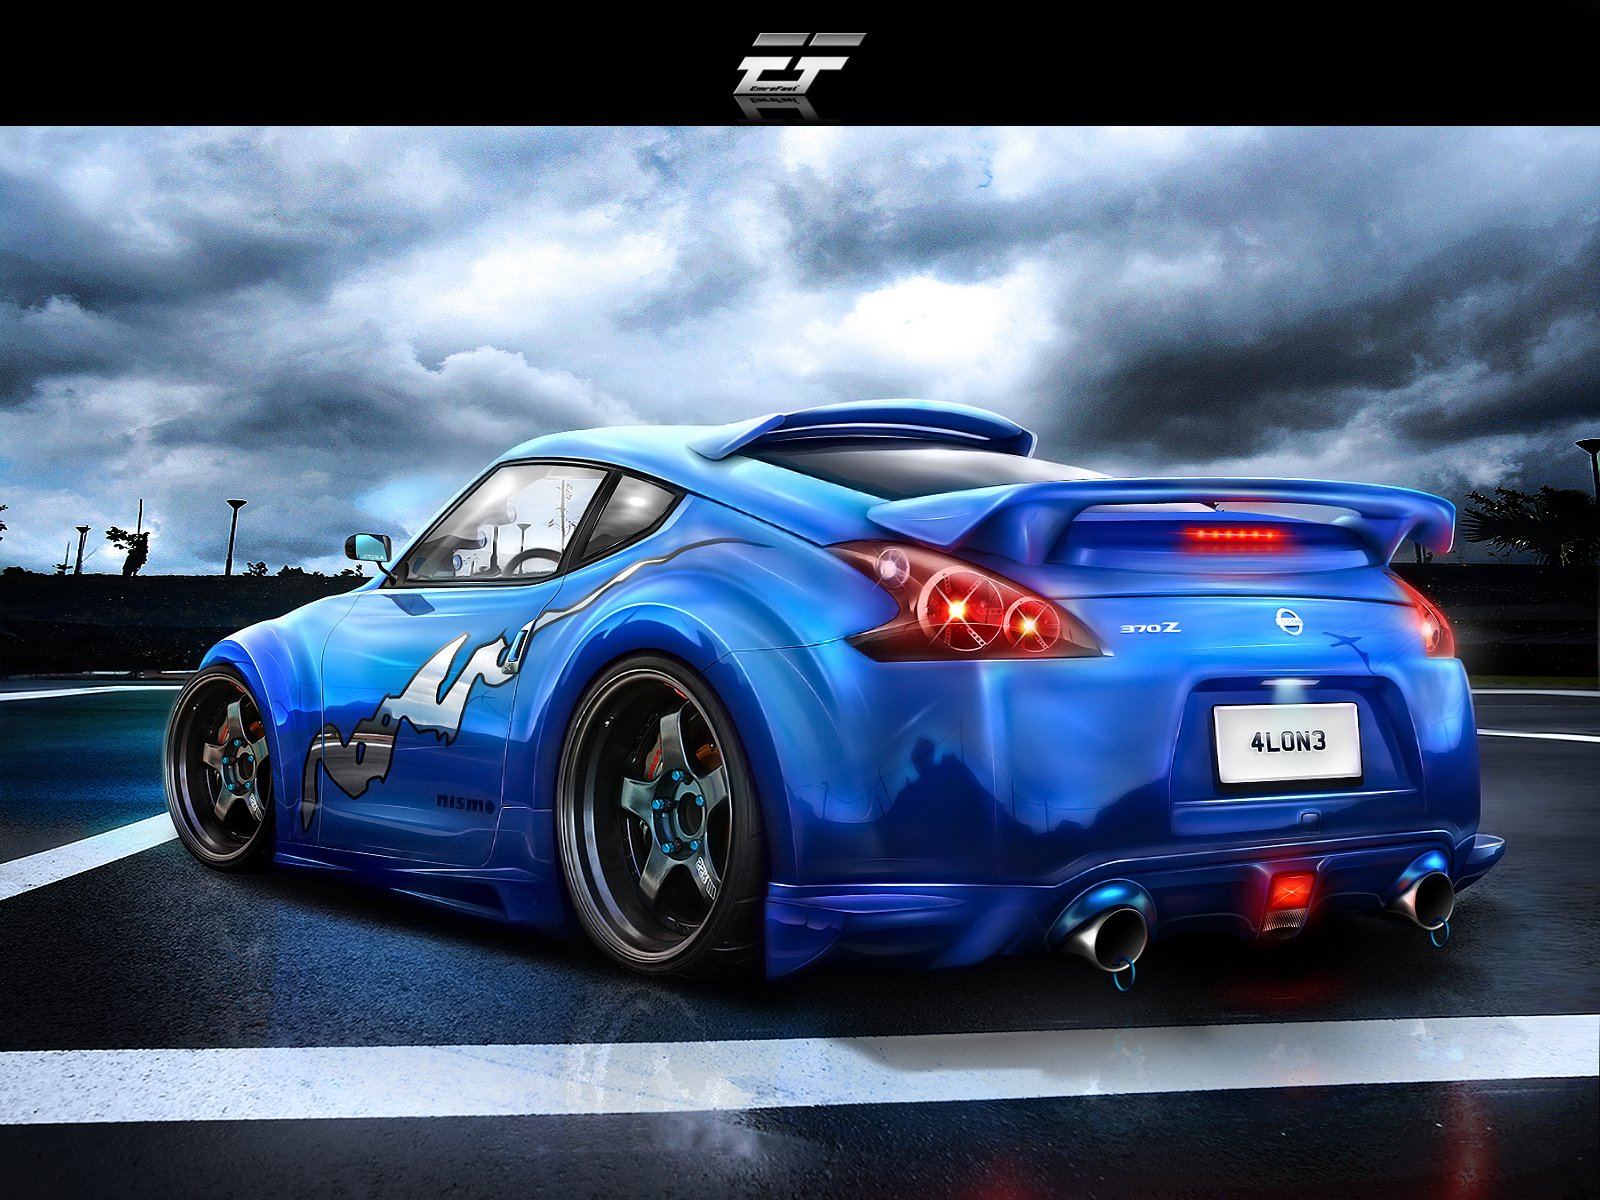 New Moderate Cars Nismo 370Z Wallpaper On This Month